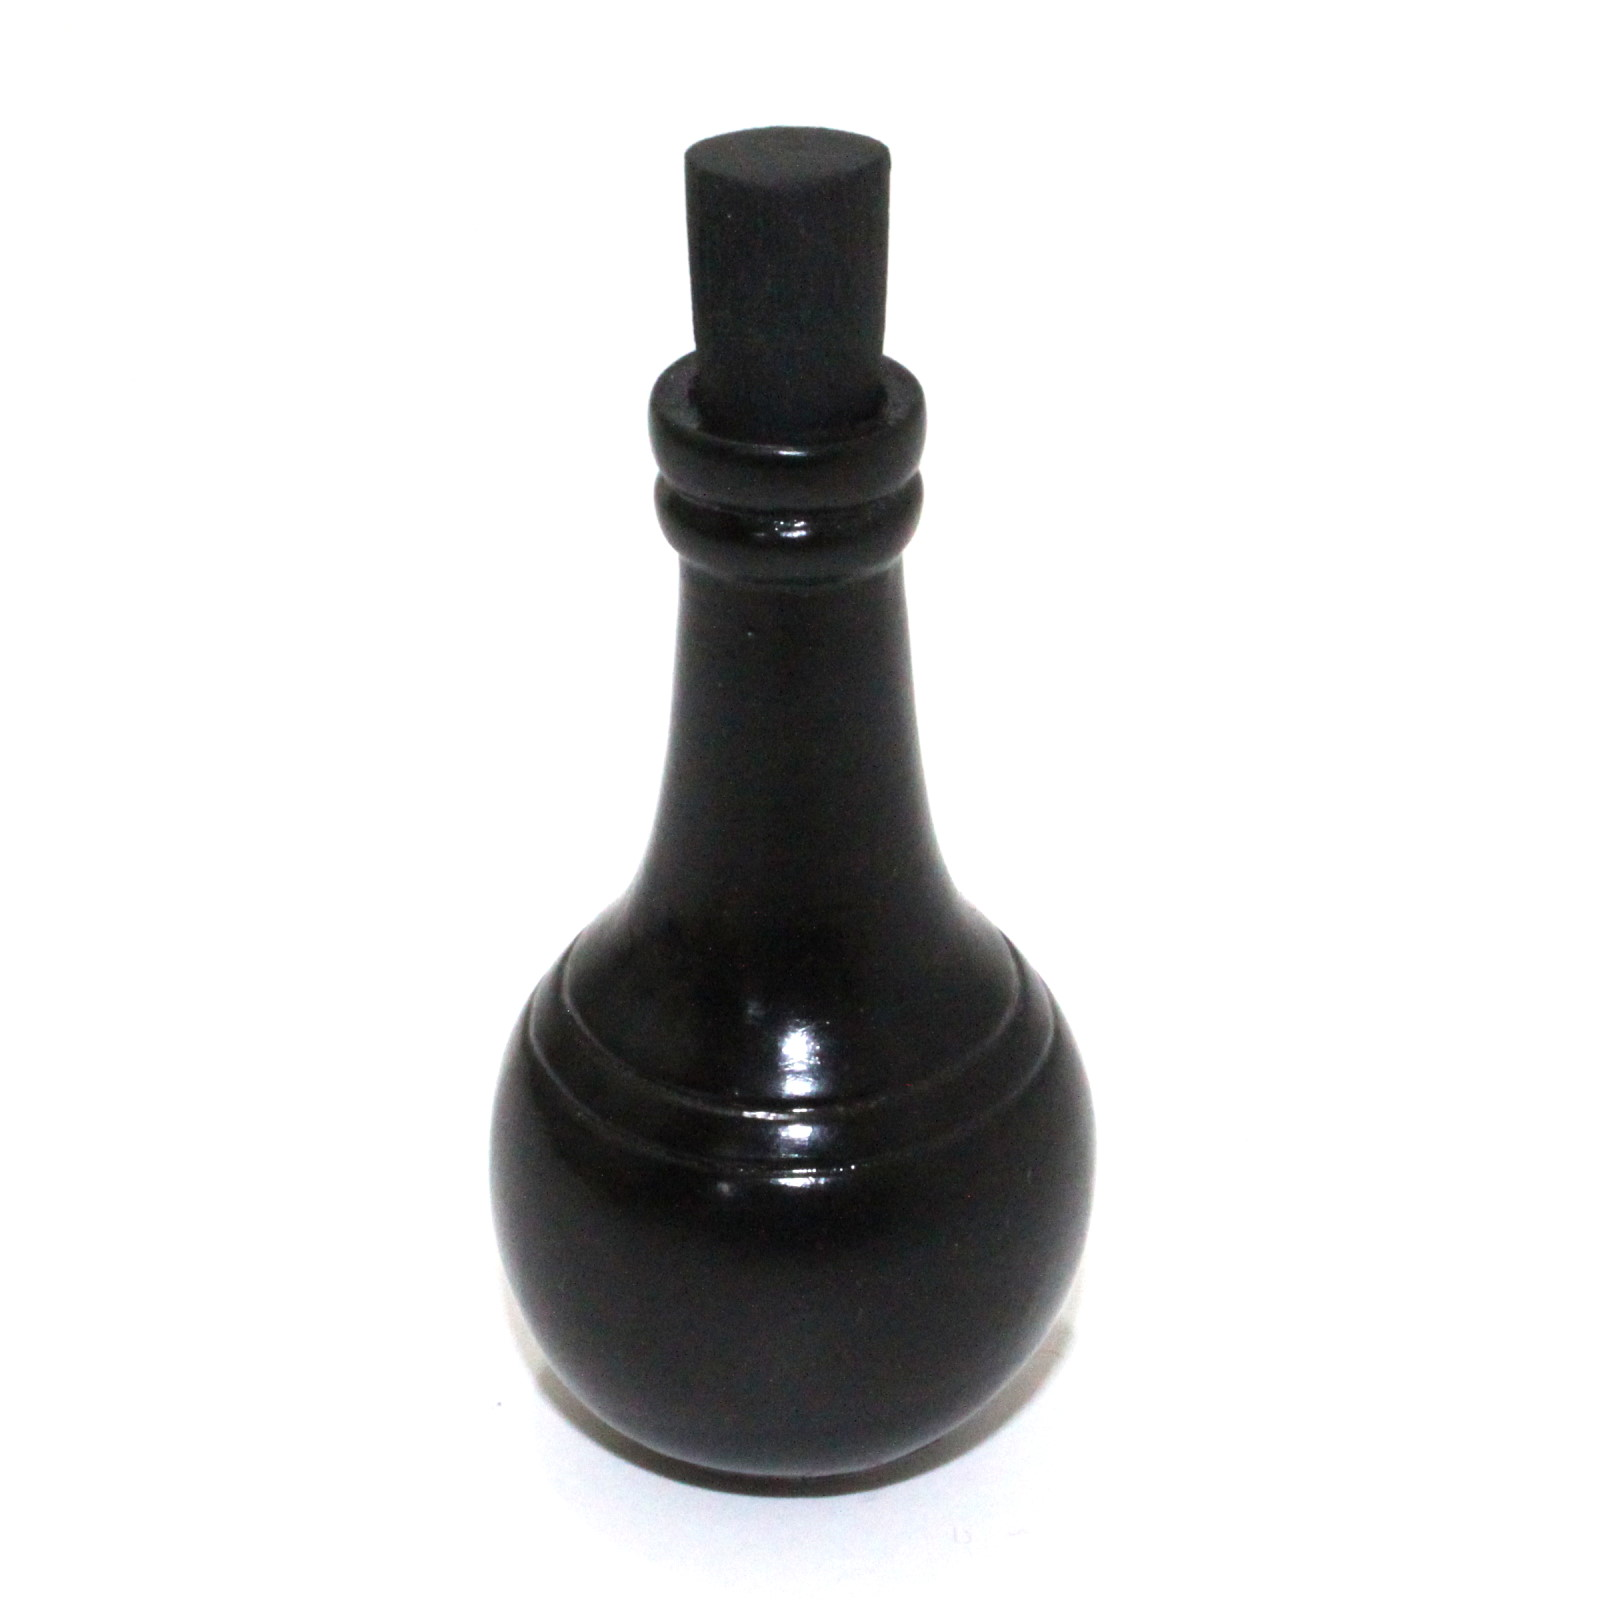 Haunted Bottle (Ebony) by Viking Mfg.